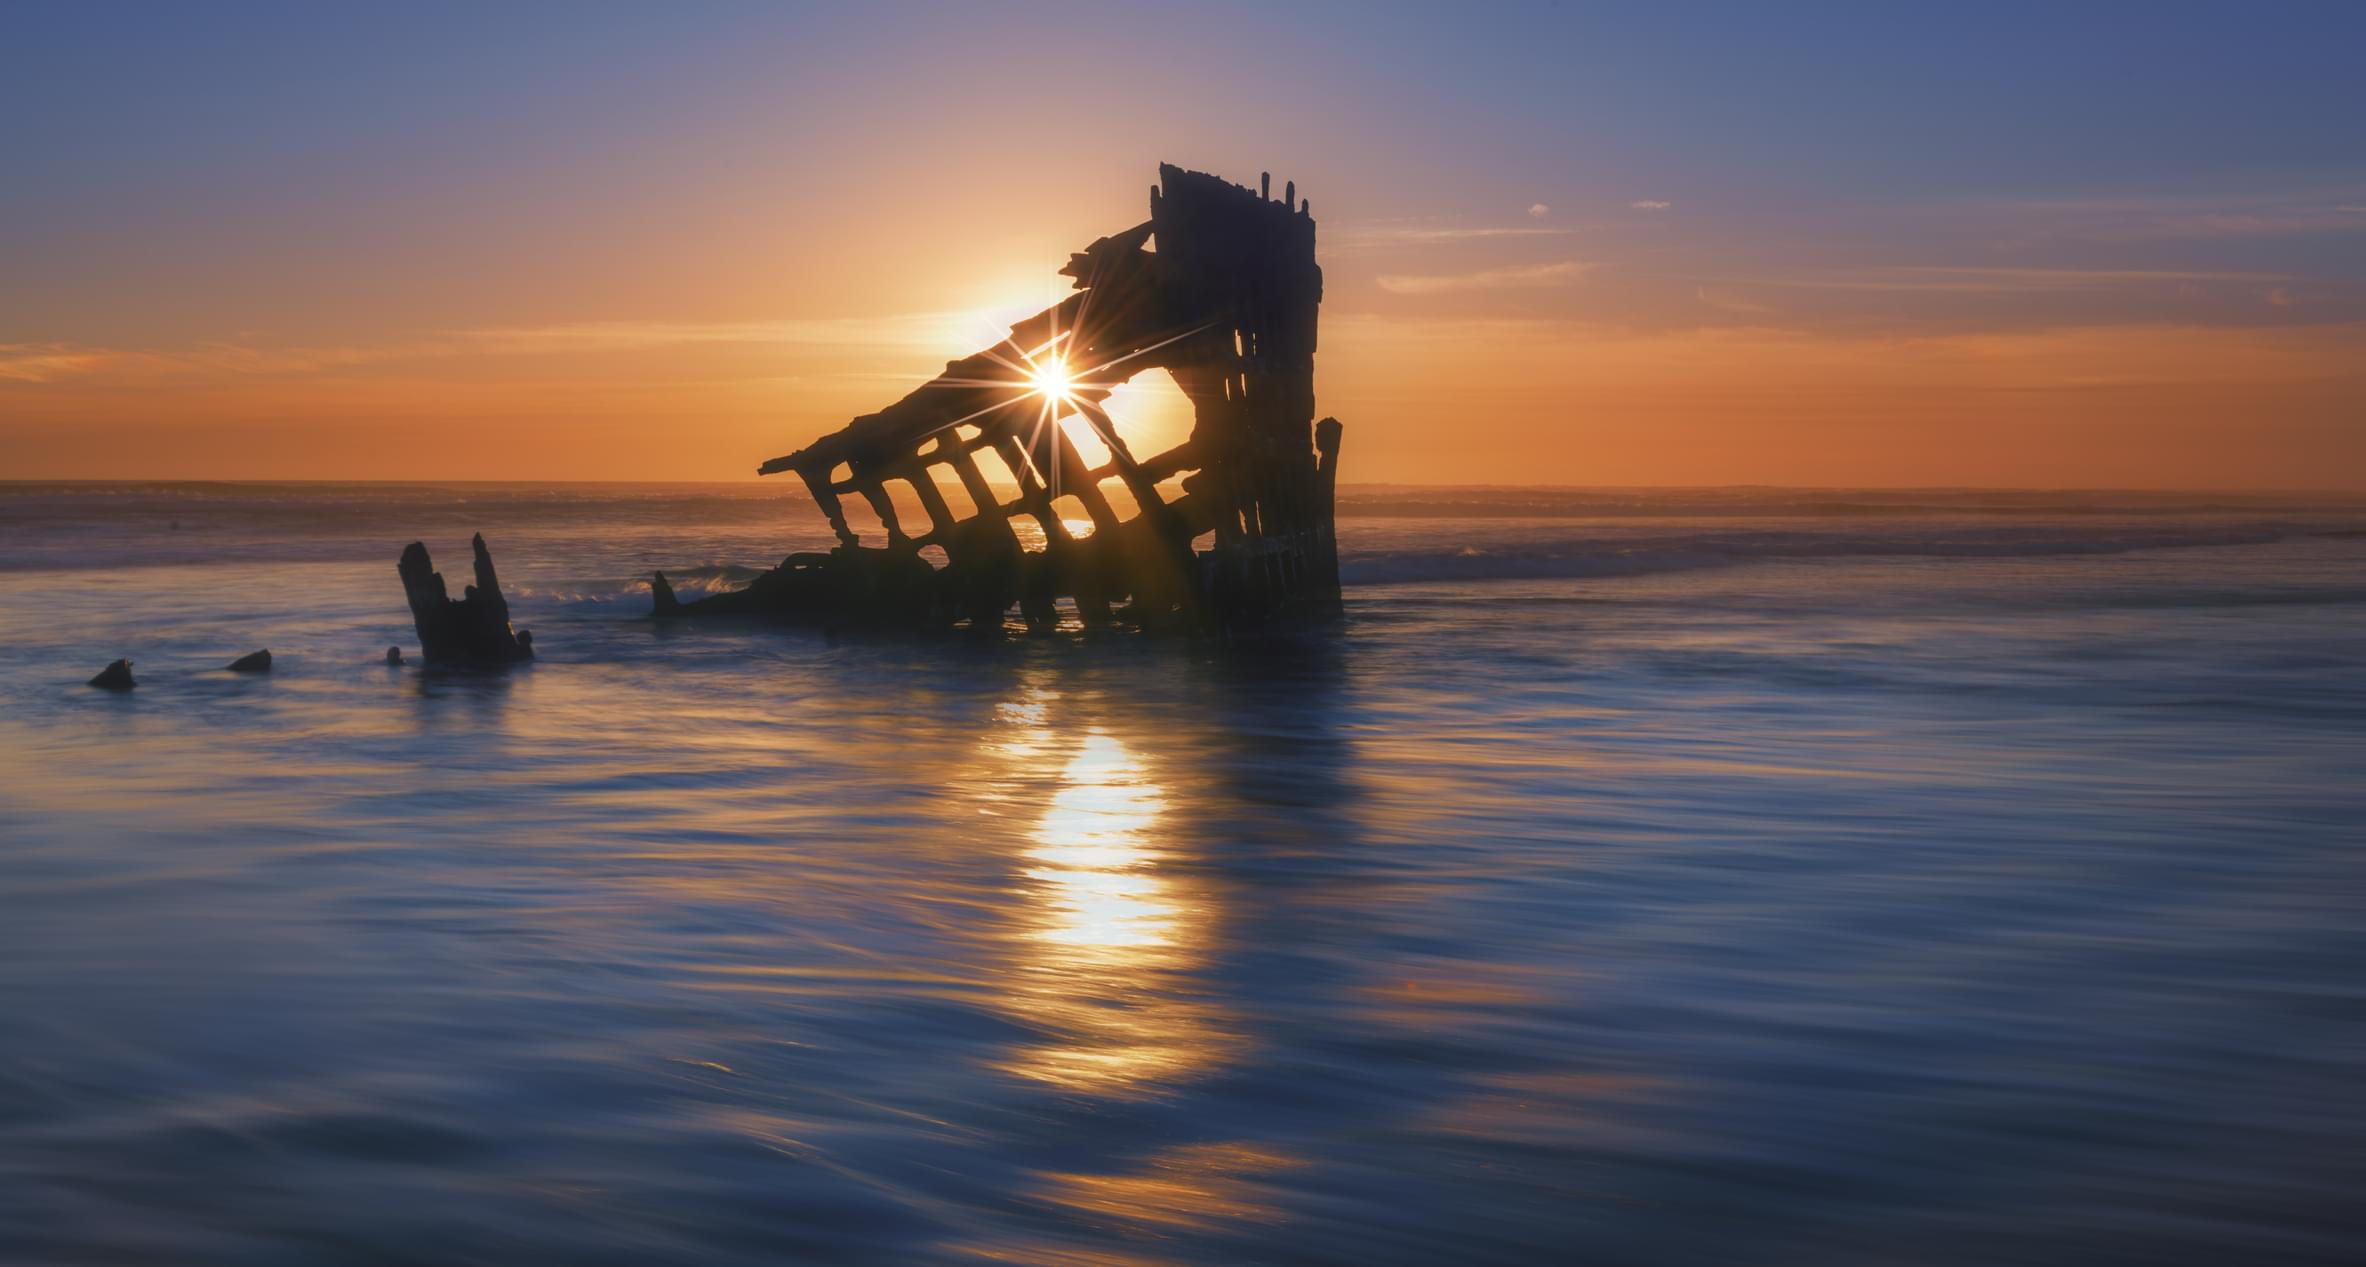 The remains of the Peter Iredale, a four-master ship that ran aground in 1906, at low tide in Fort Stevens State Park.